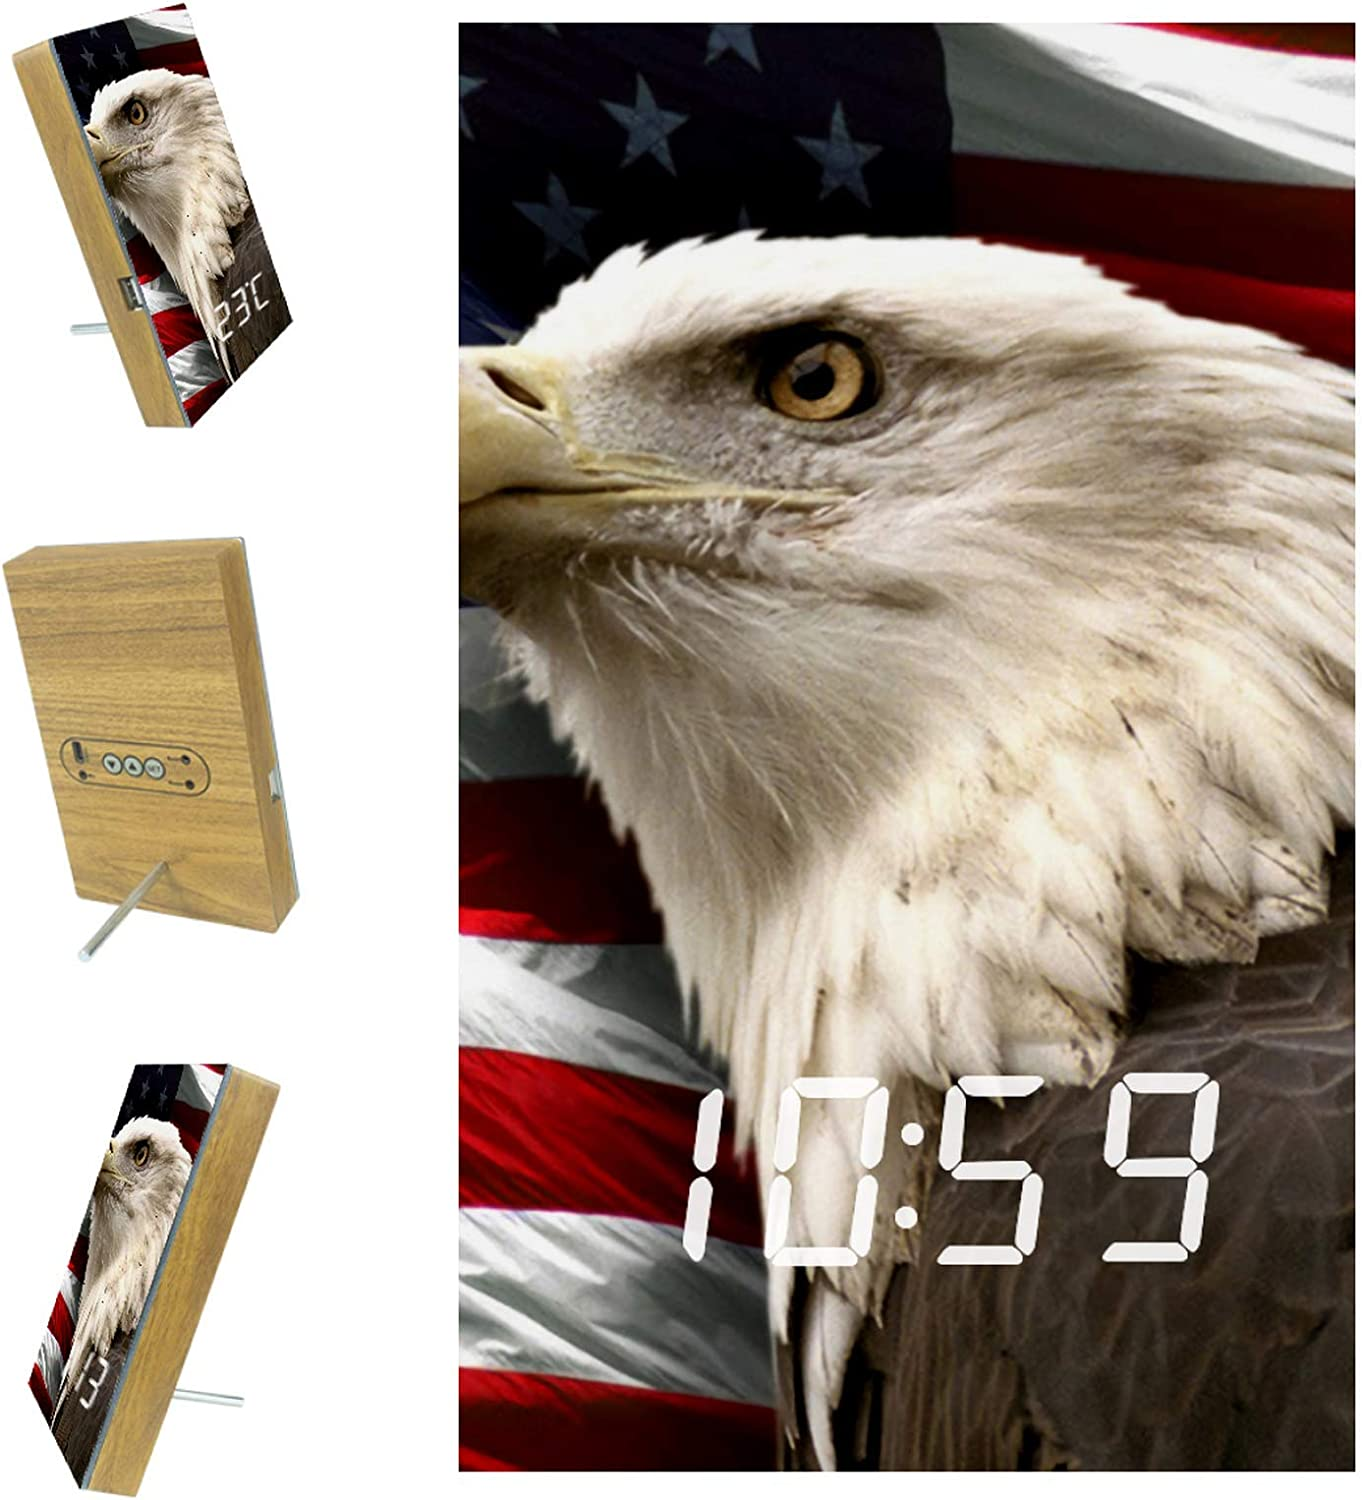 Digital Alarm Clock murrica for Kitchen 5 ☆ very NEW before selling ☆ popular Office 3 Bedrooms